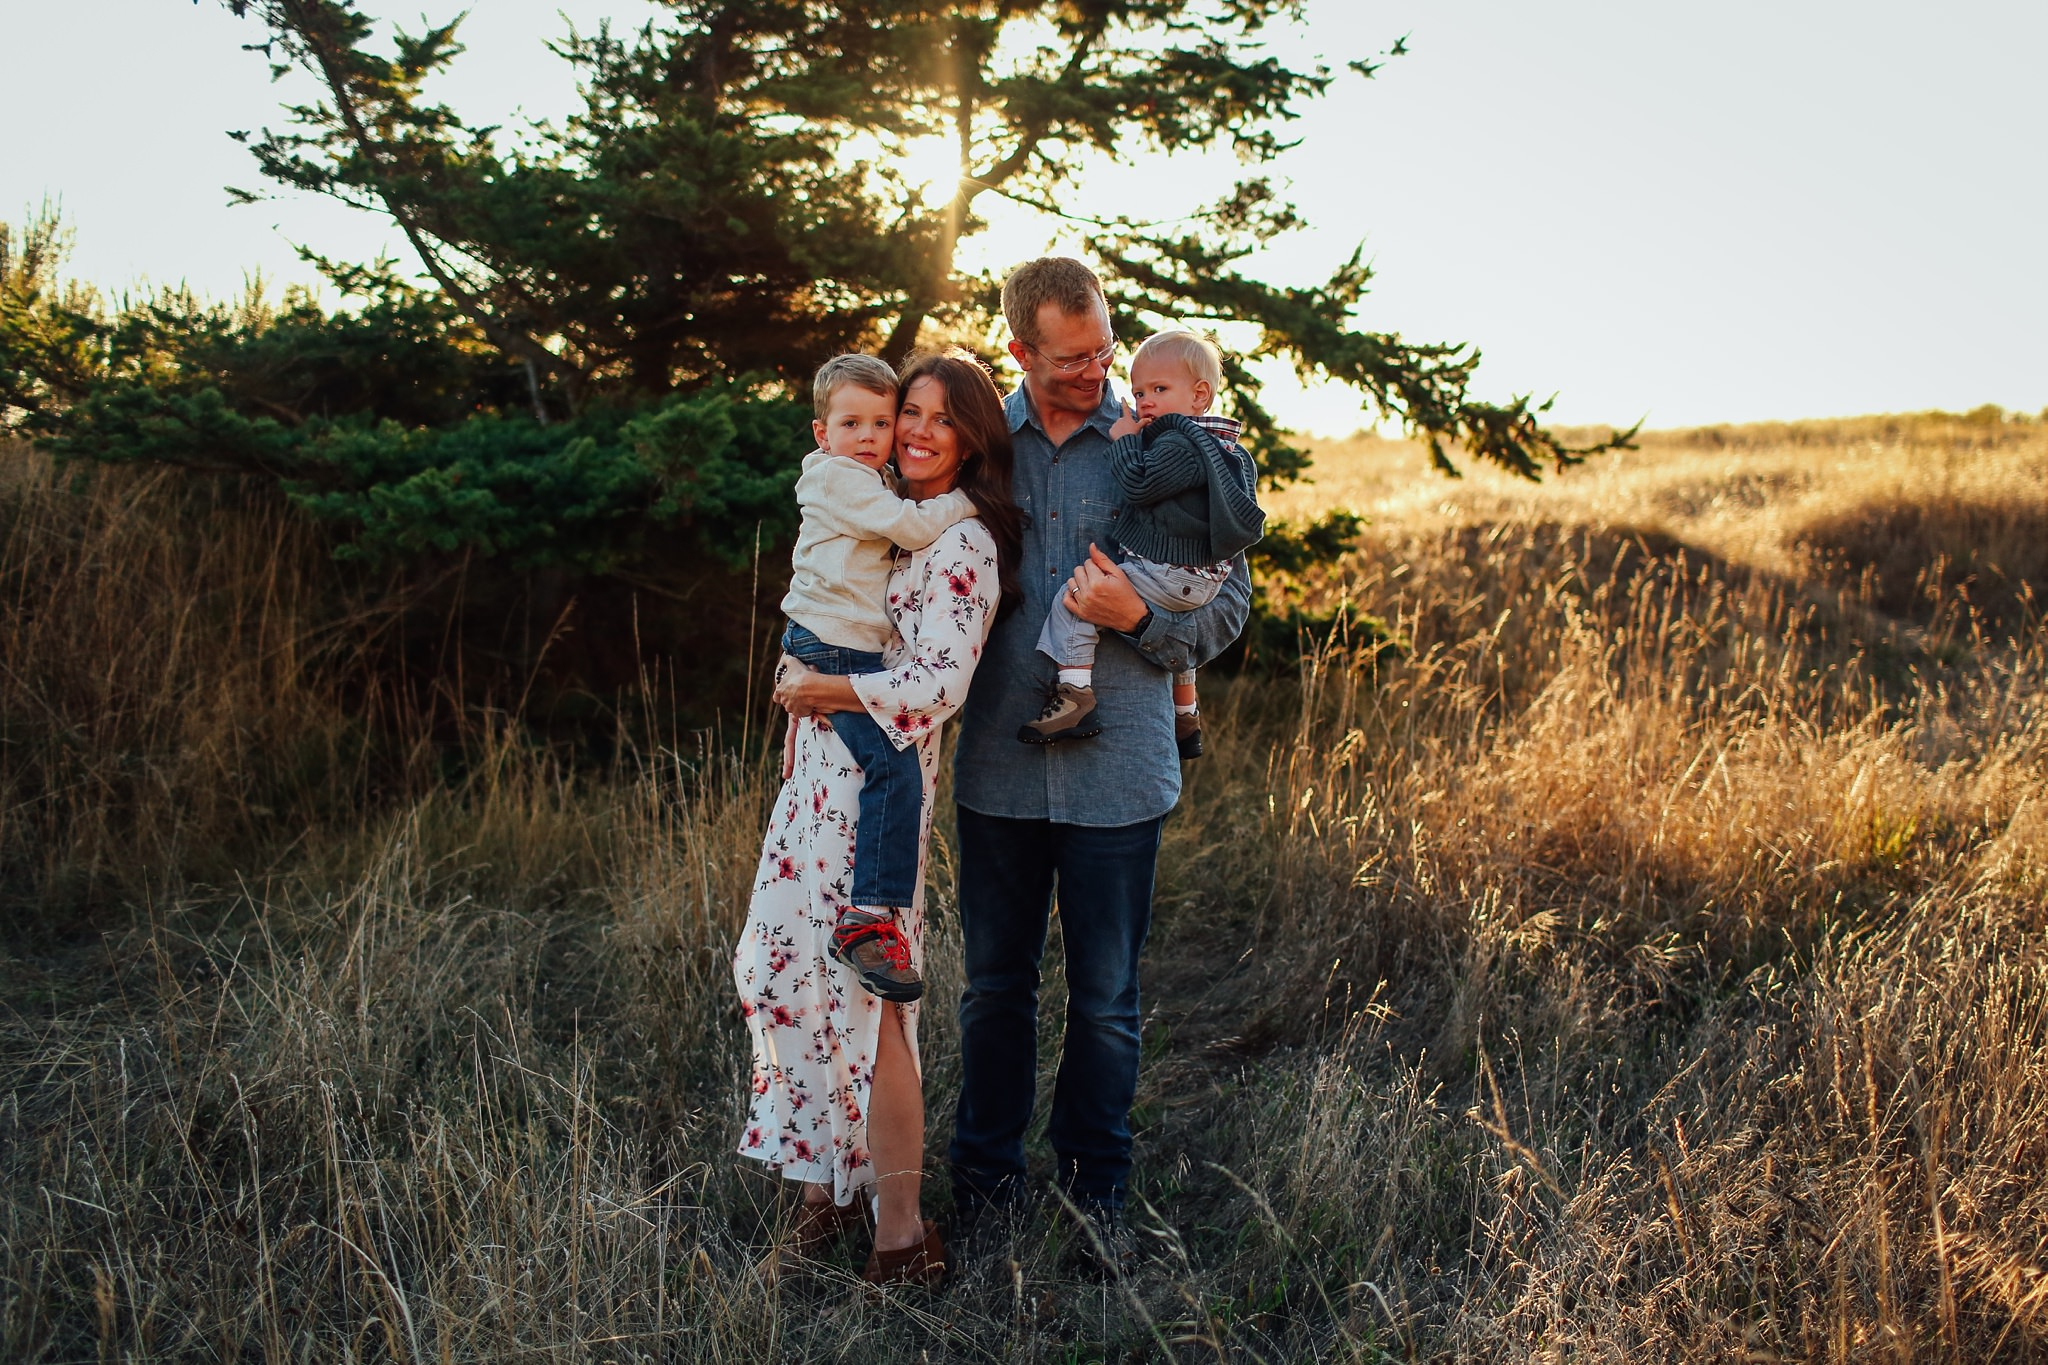 Whidbey-Island-Family-Photographer-Kara-Chappell-Photography_1050.jpg